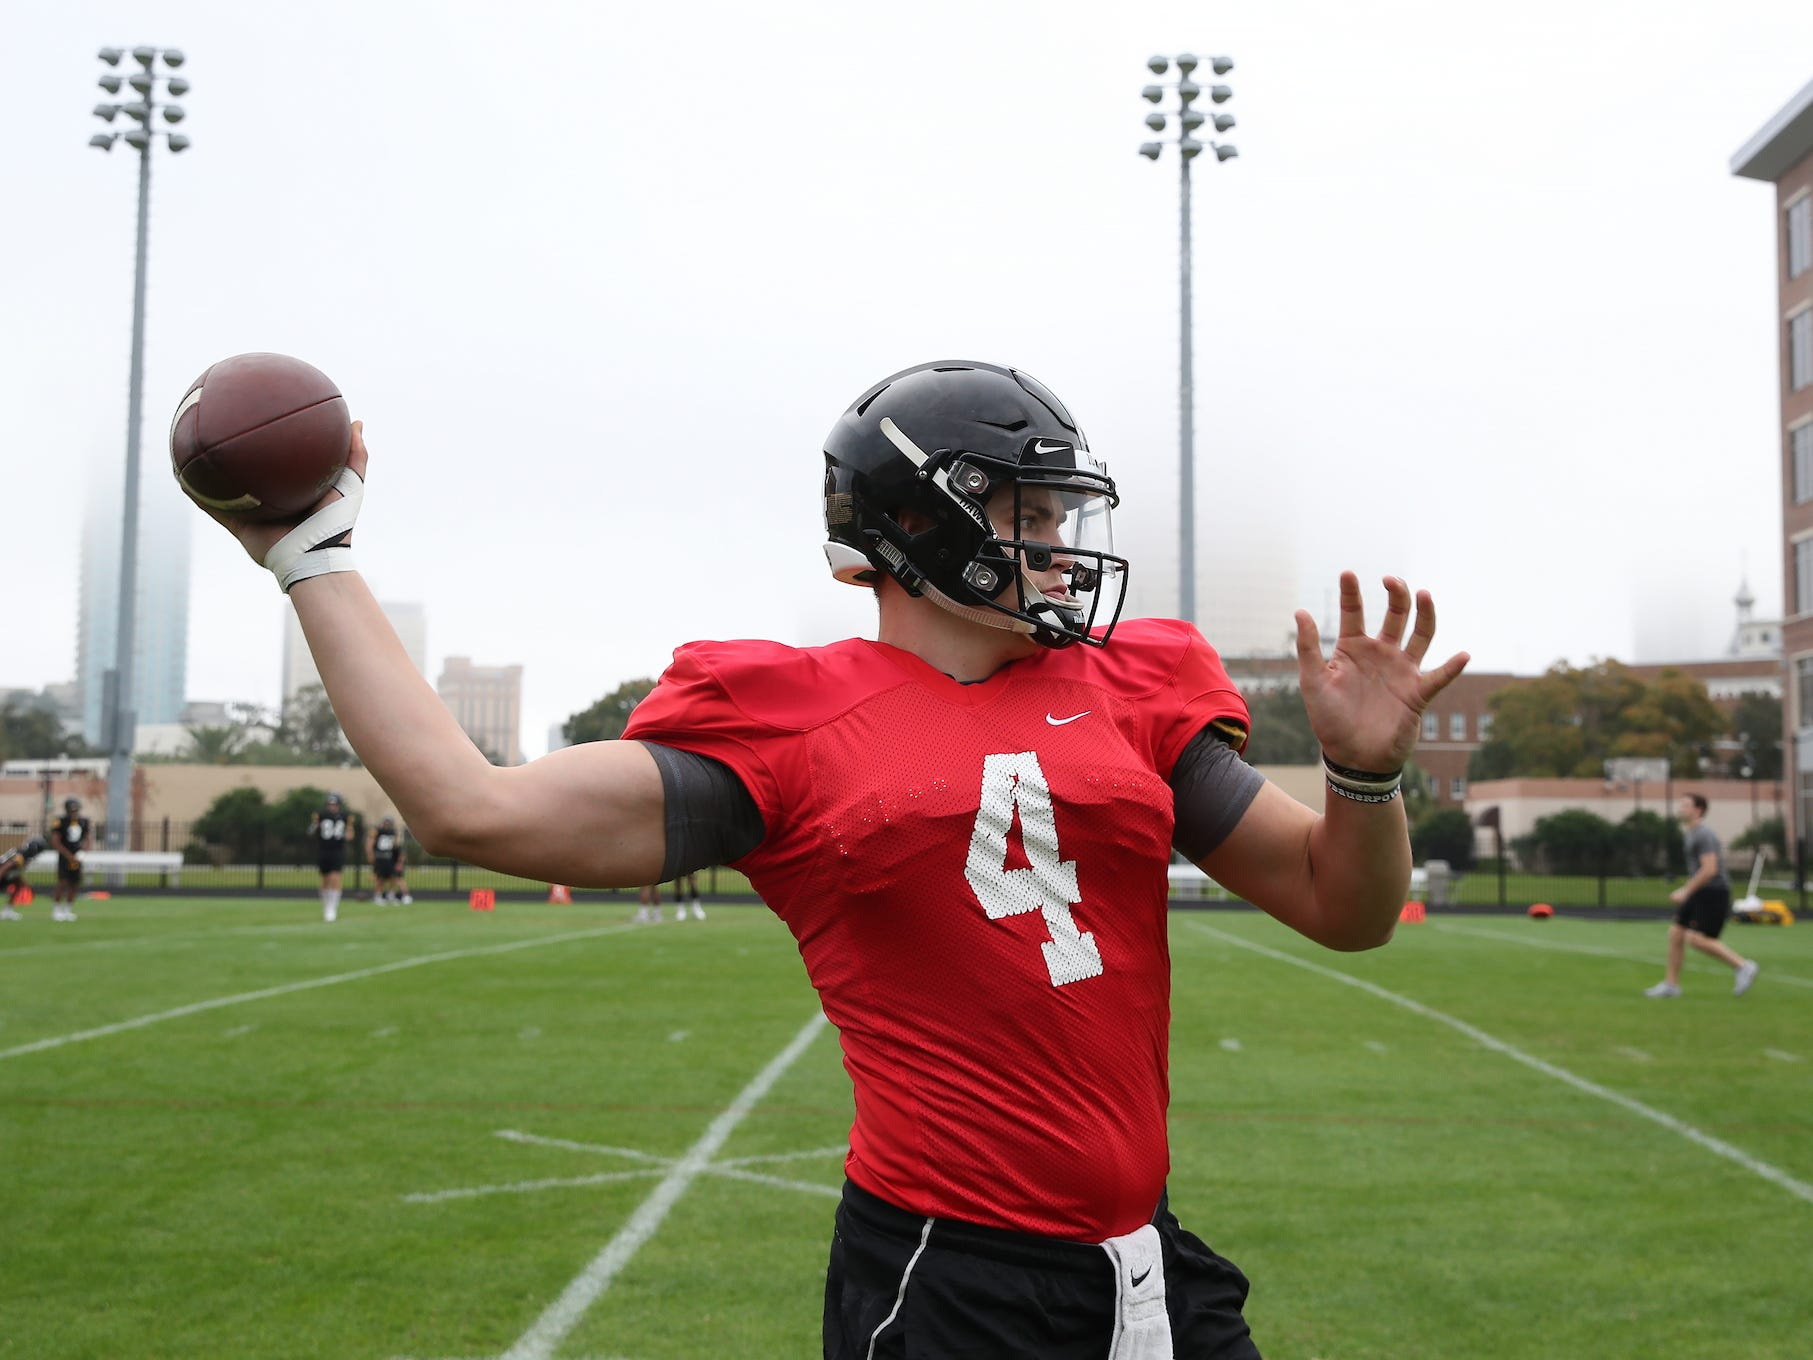 In this University of Iowa photo from Saturday's practice, Hawkeyes quarterback Nate Stanley warms up. Stanley actually threw one pass late in Iowa's 30-3 Outback Bowl loss to Florida on Jan. 2, 2017. For more photos, visit HawkeyeSports.com.